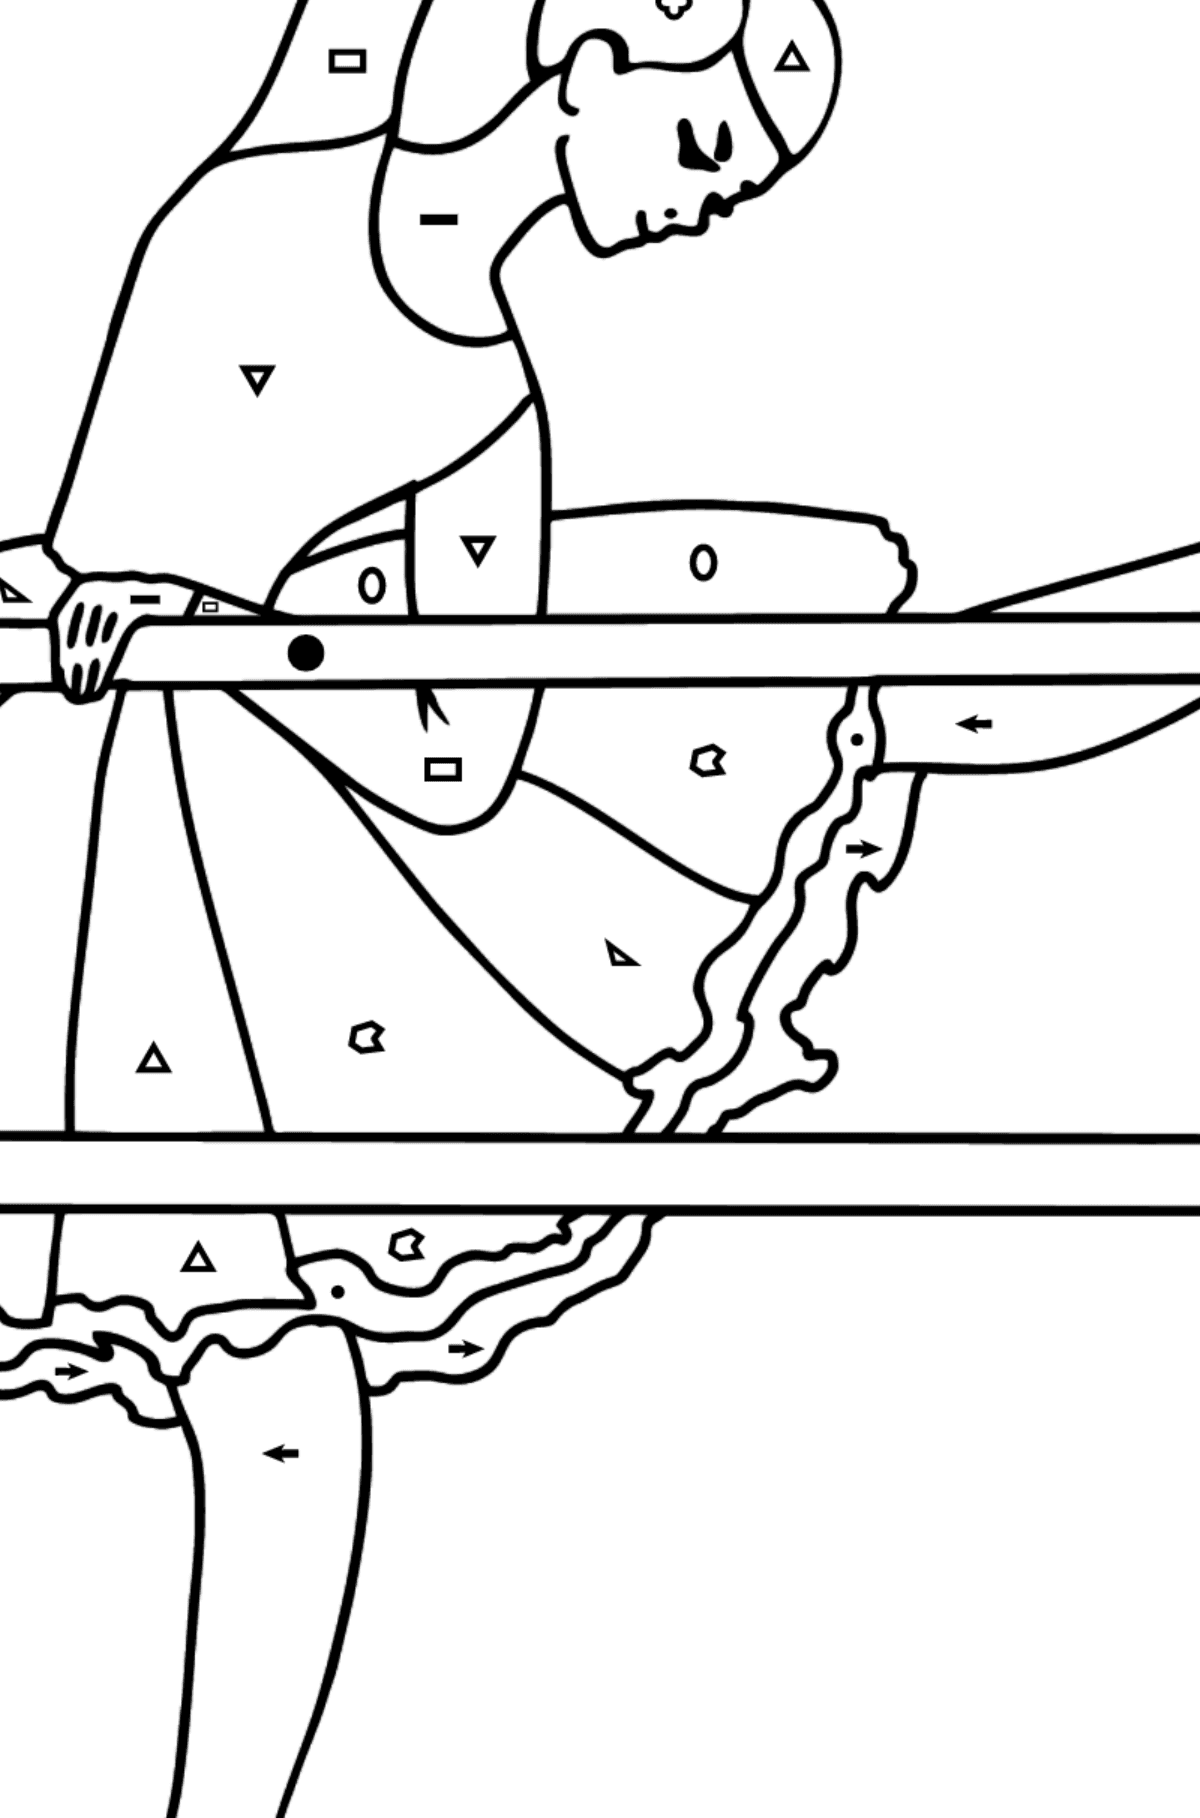 Coloring page - ballerina at the rehearsal - Coloring by Symbols and Geometric Shapes for Kids